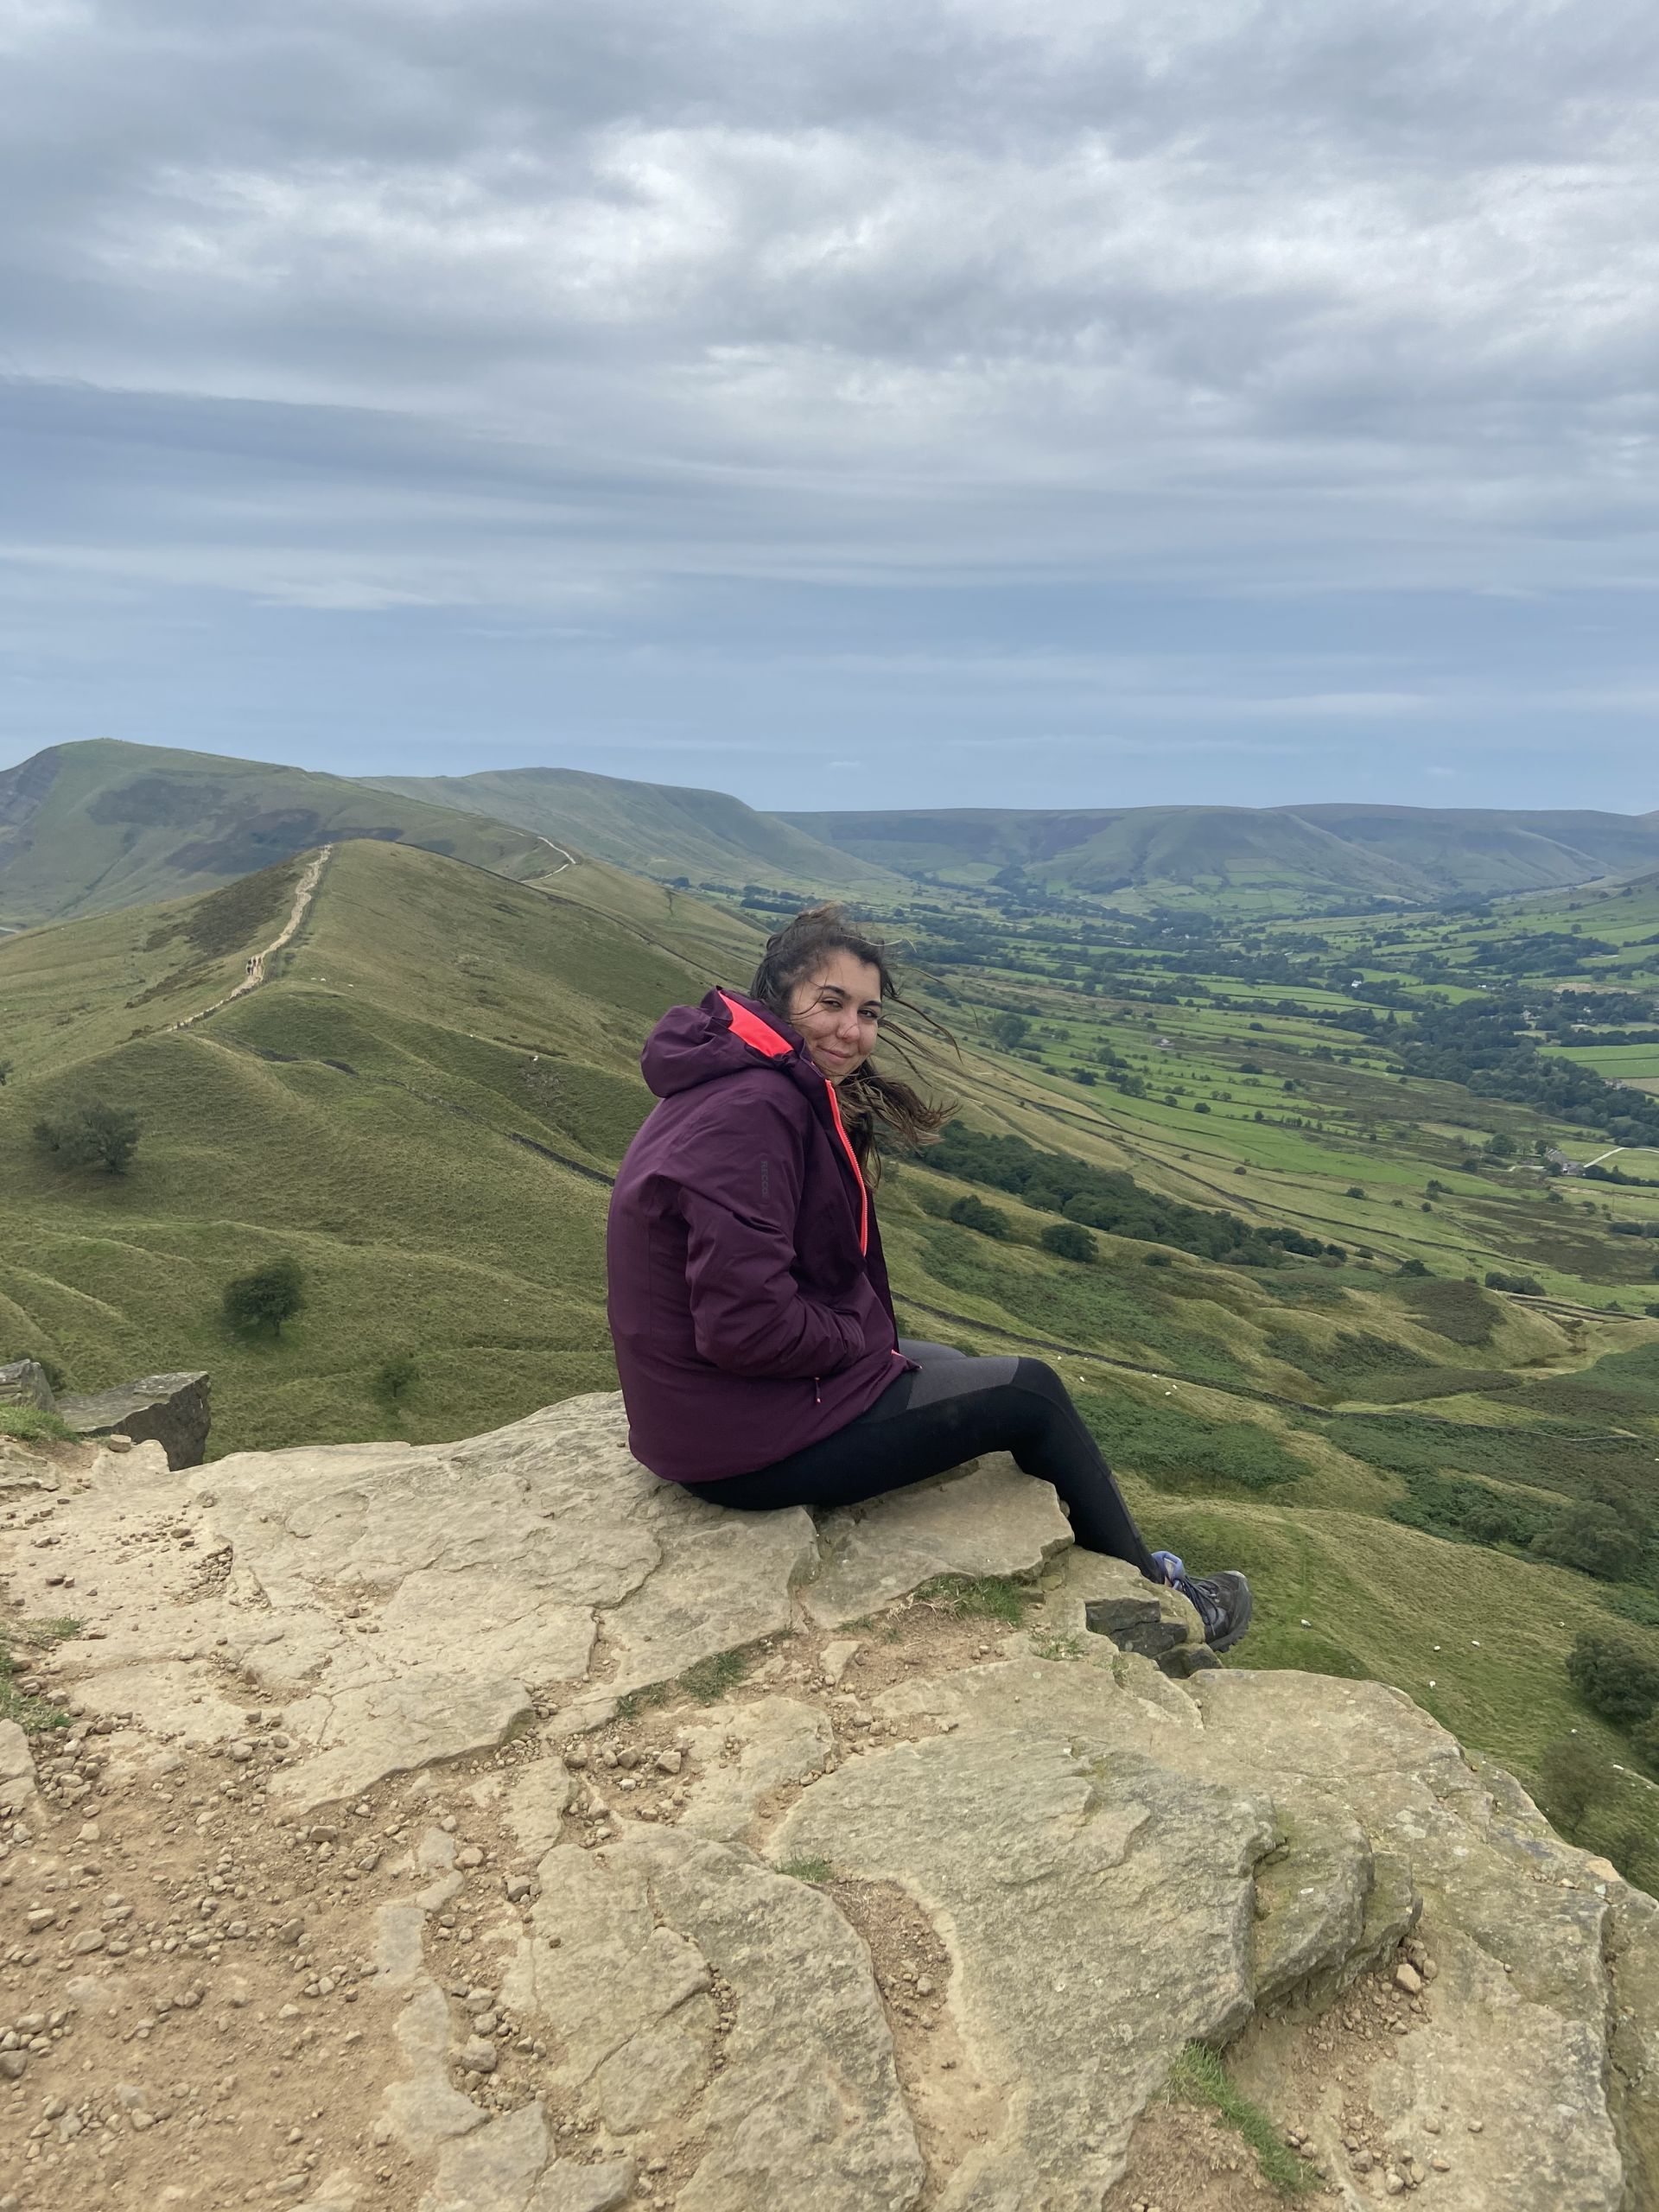 me sat at the top of the ridge of Mam Tor in the Peak District